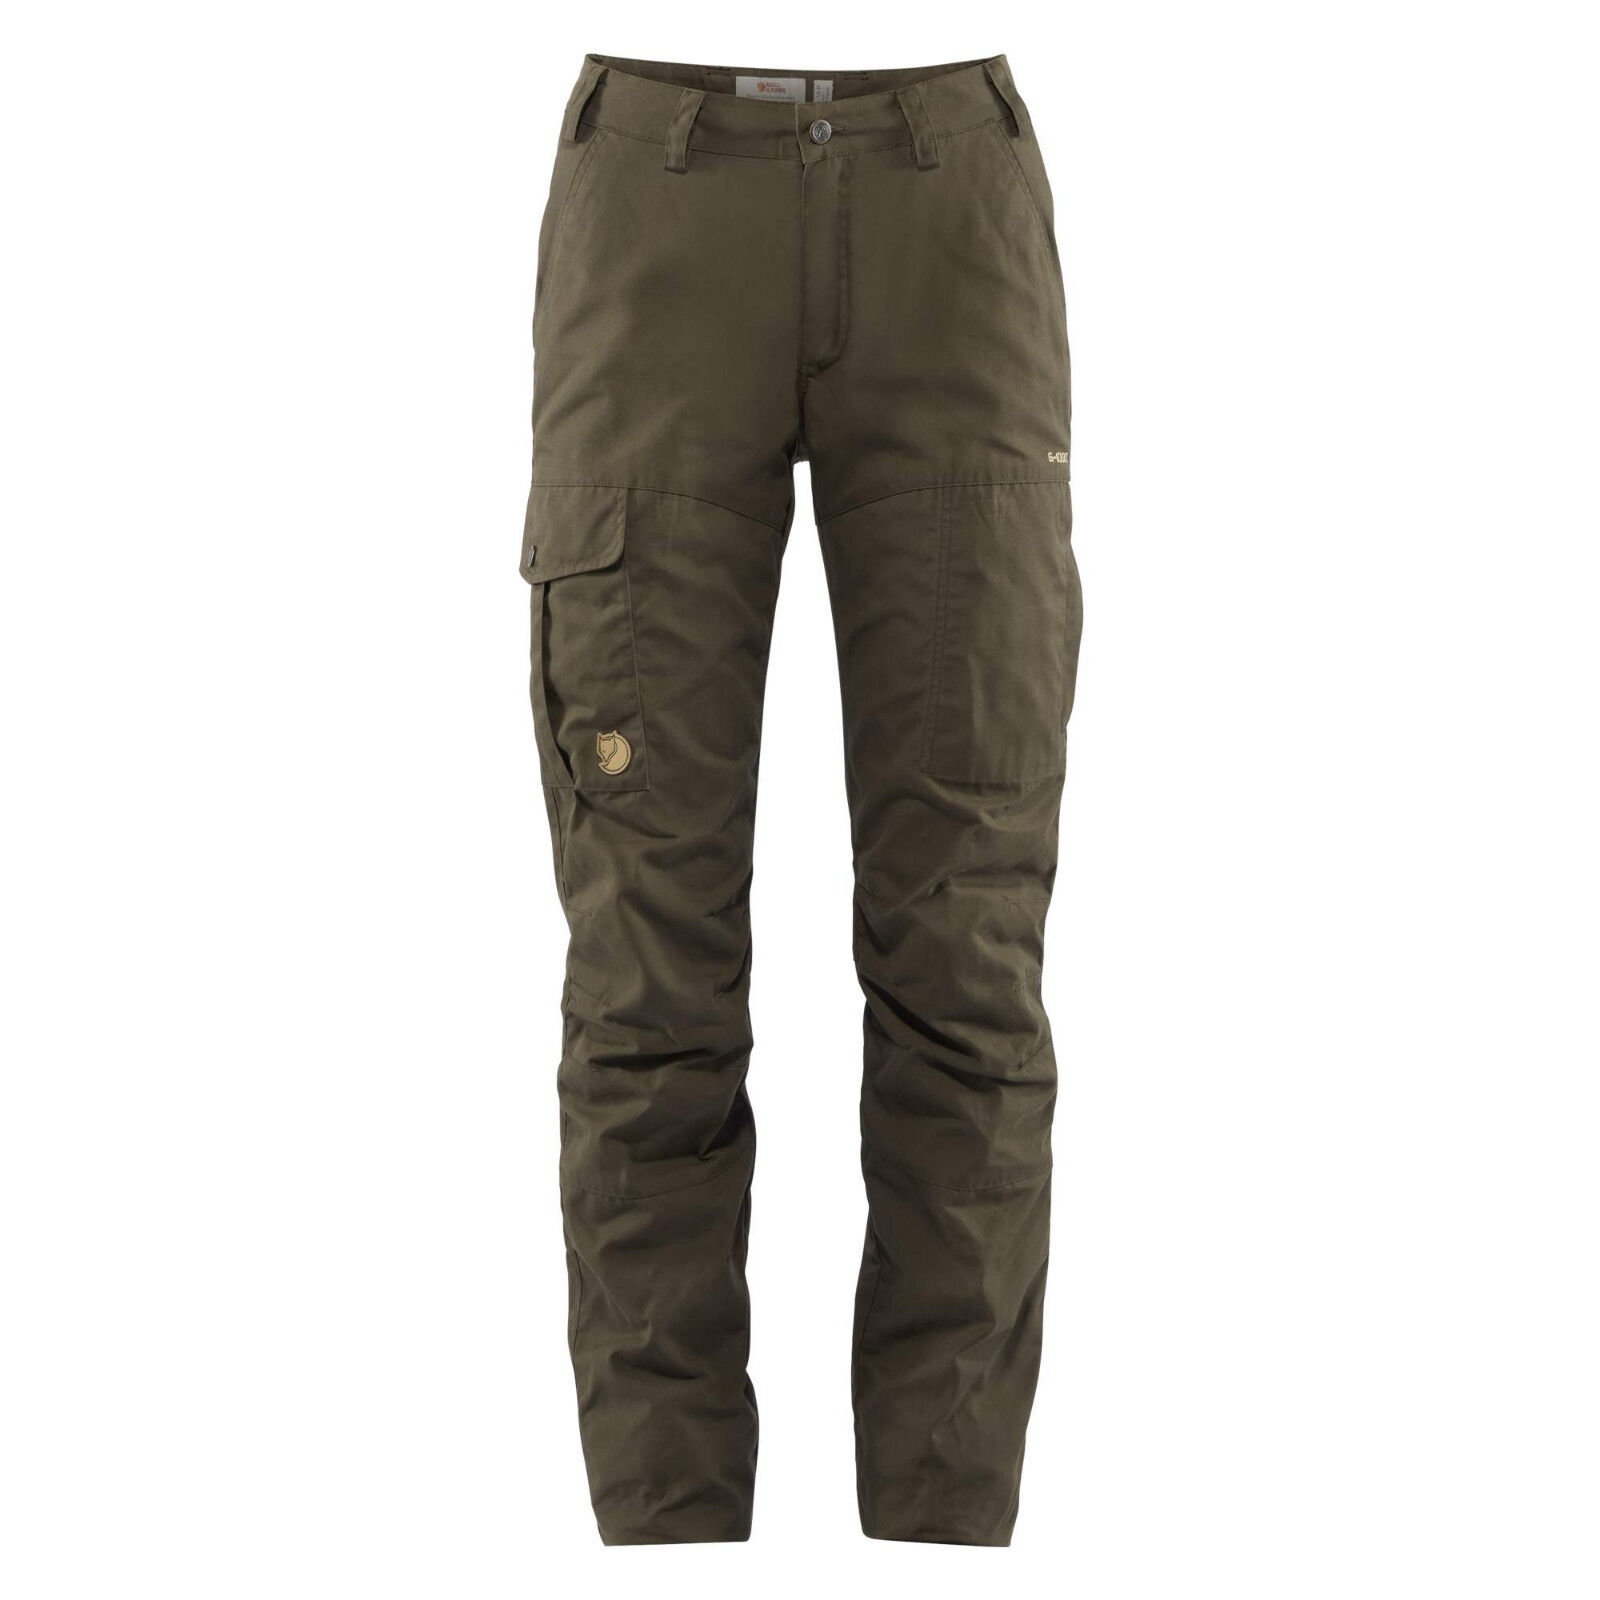 Fjäll Räven Karla pro Winter Trousers Women's G-1000 Material  Hiking Dark Olive  more order